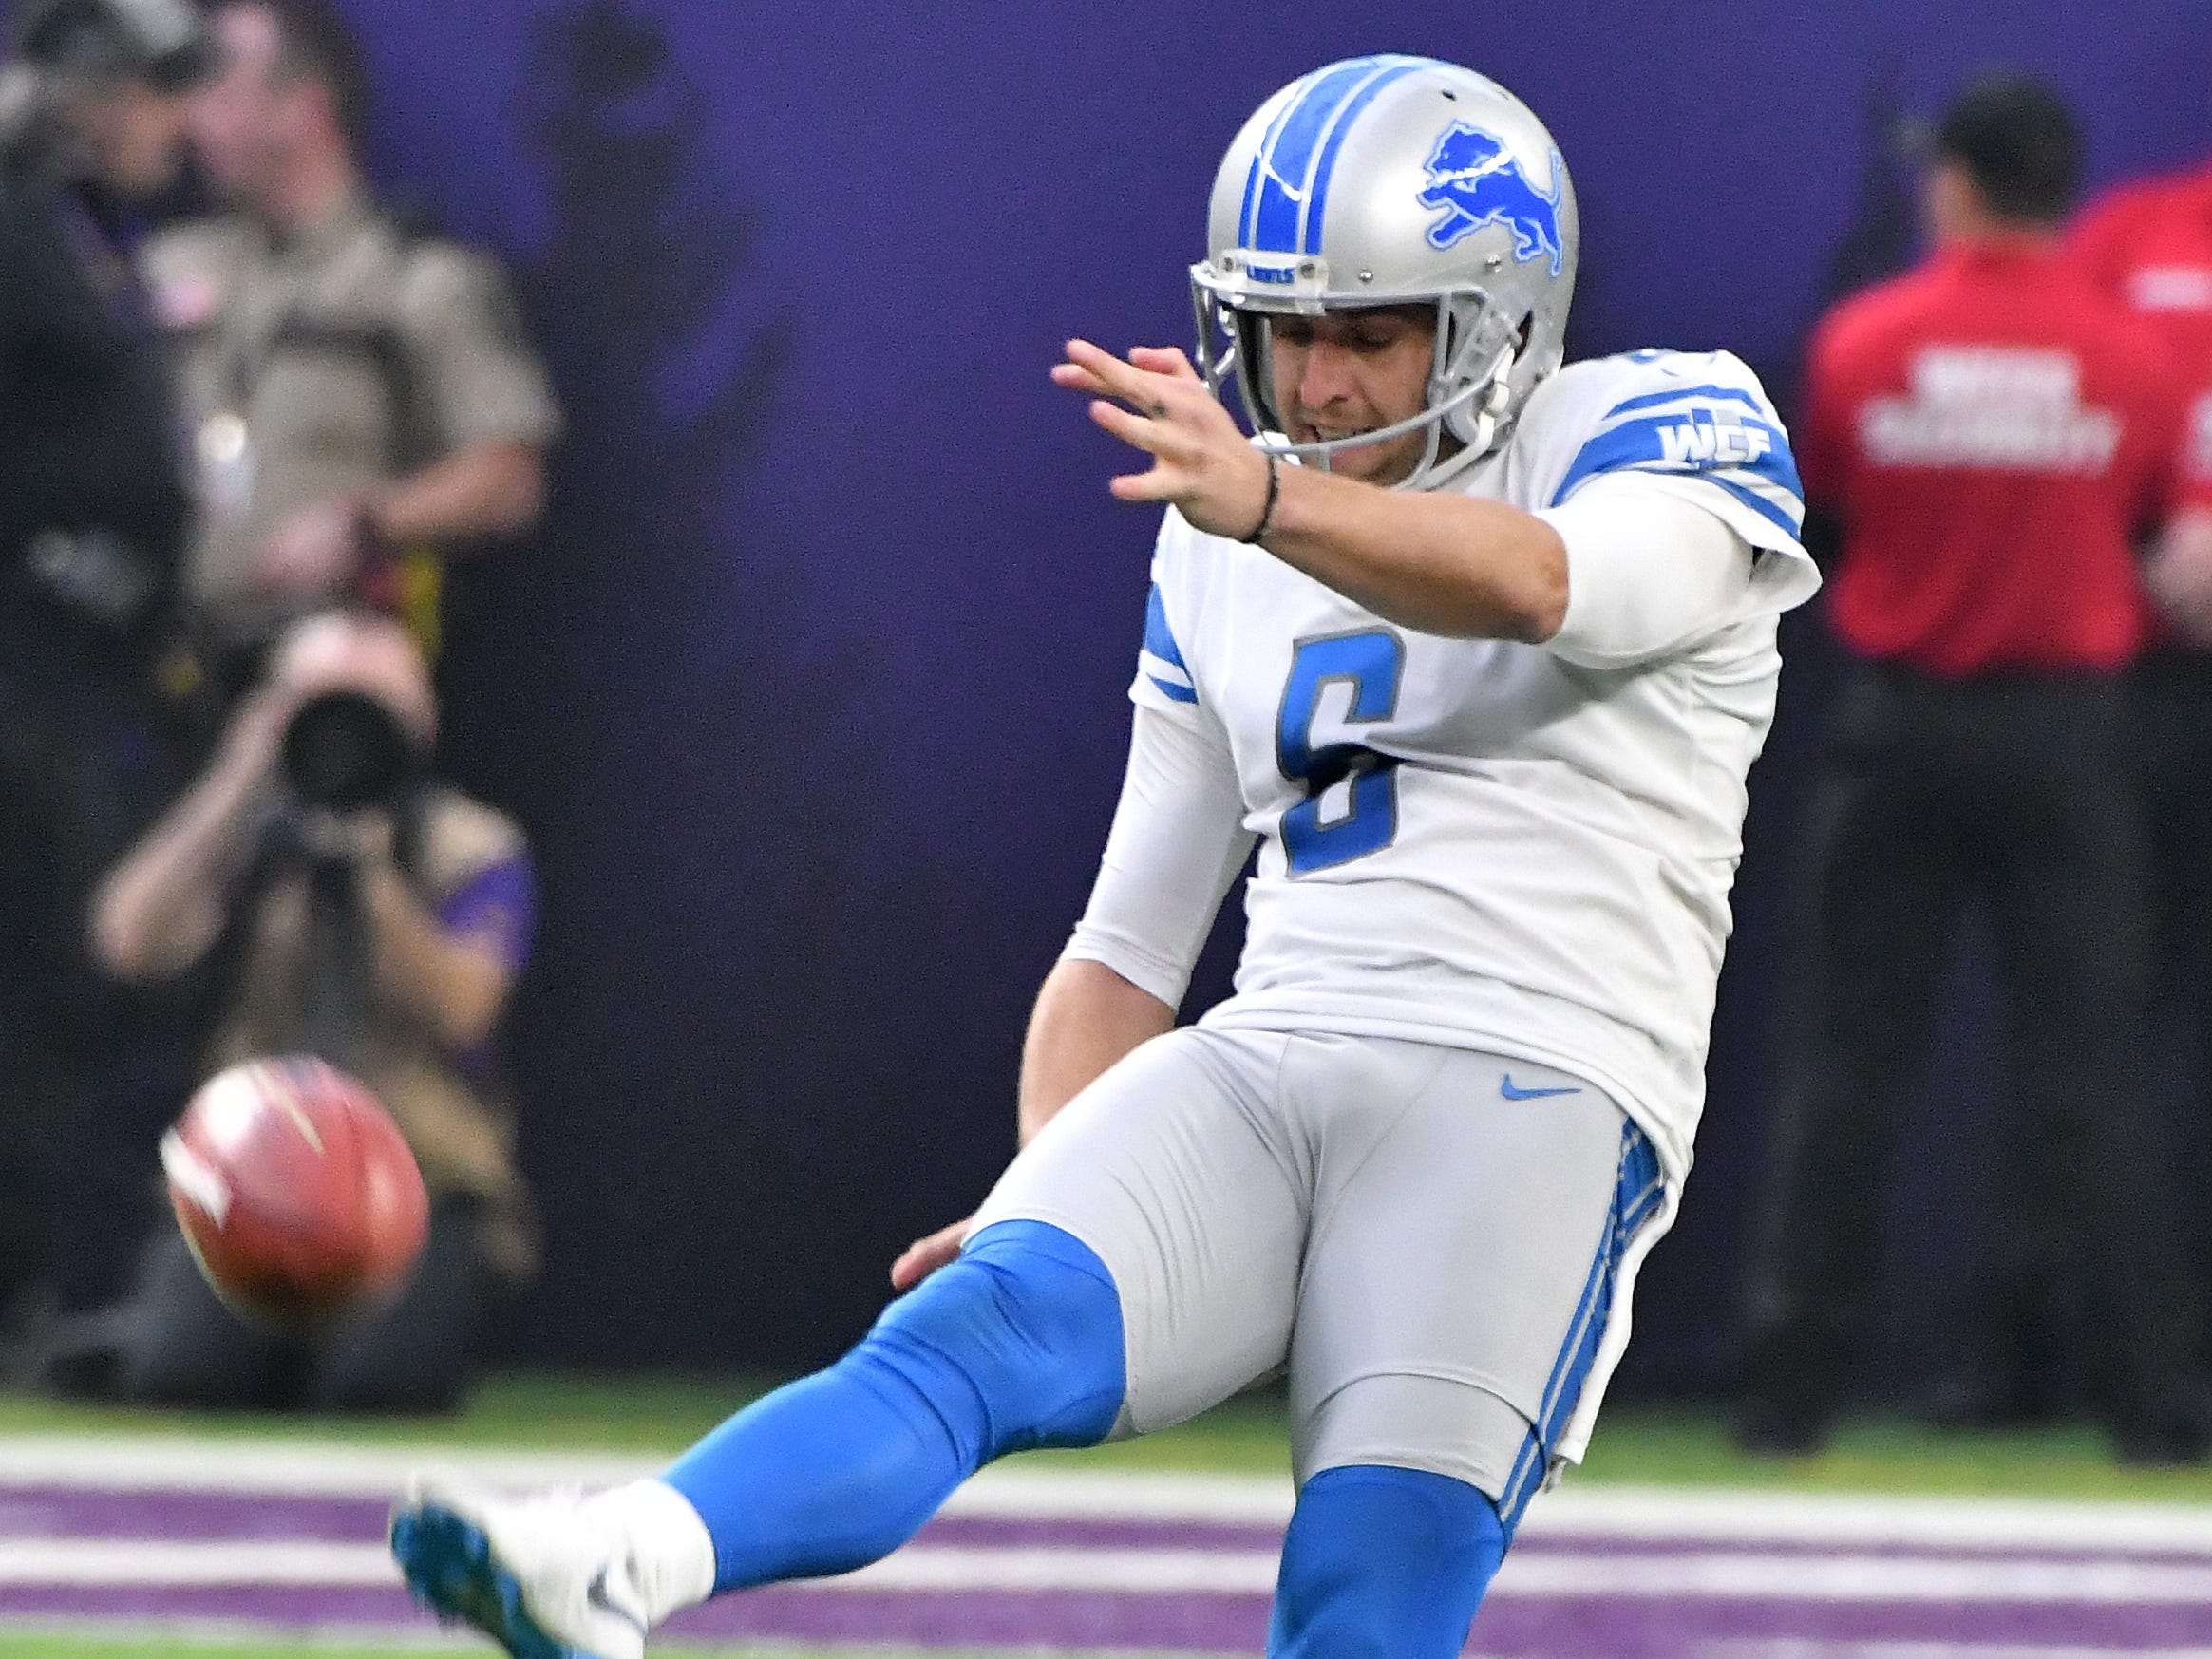 Lions punter Sam Martin punts in the first quarter.